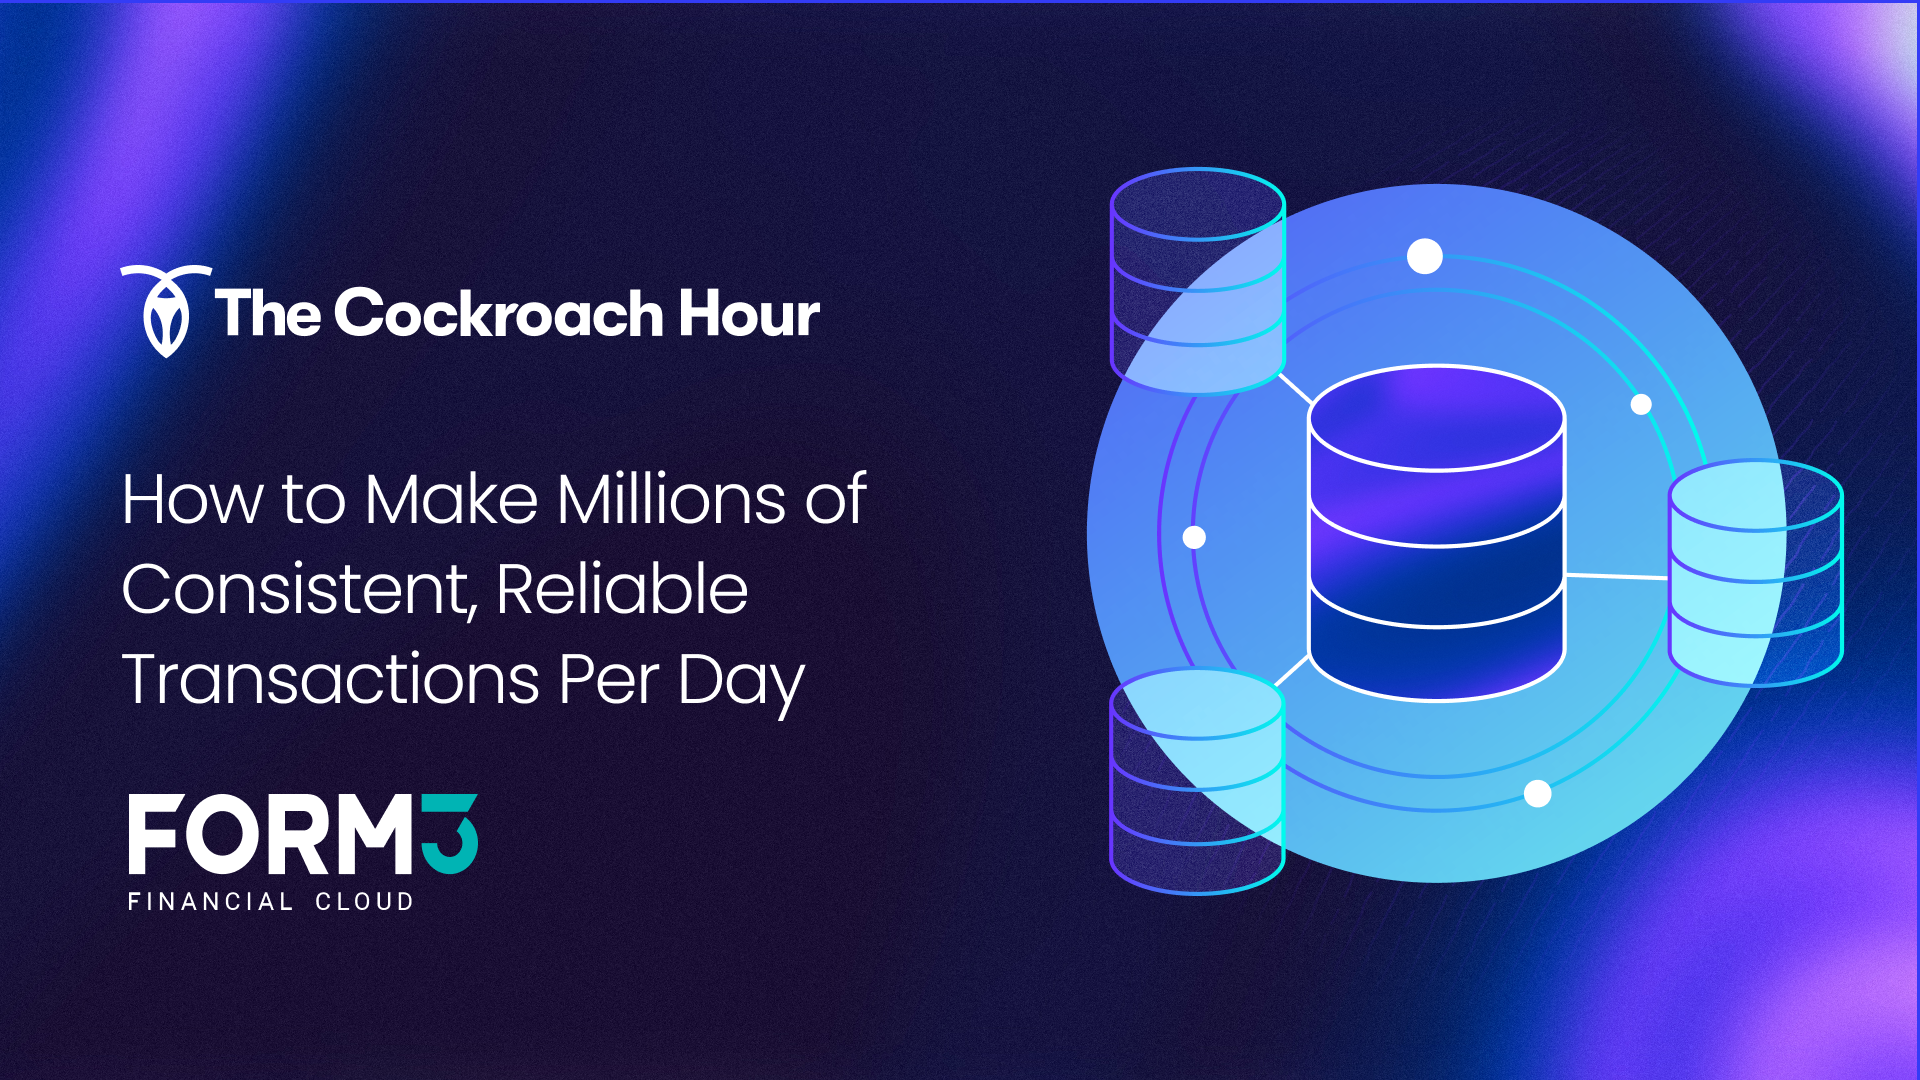 The Cockroach Hour: How to Make Millions of Consistent, Reliable Transactions Per Day